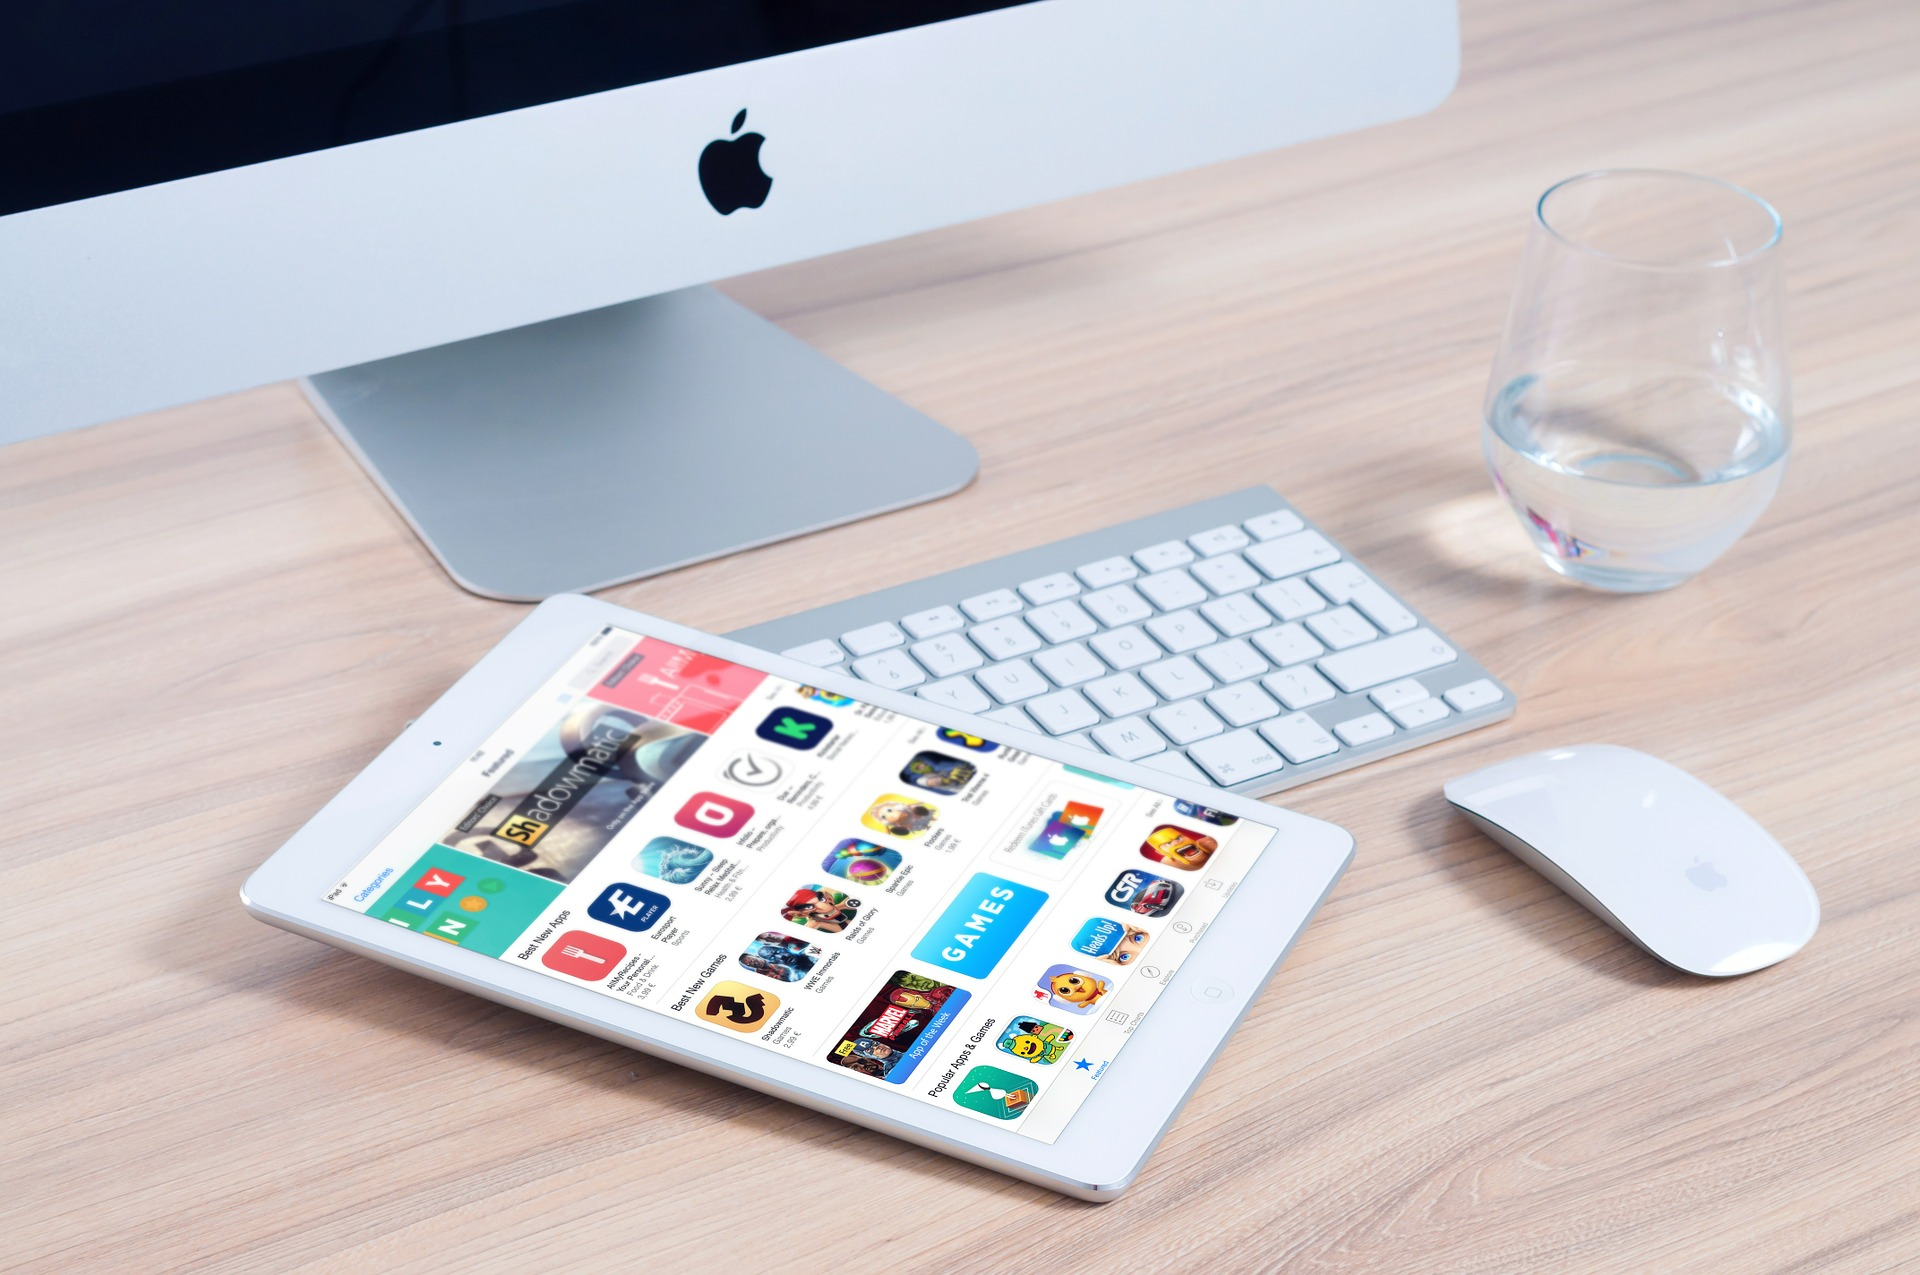 A complete list of iPad apps for education